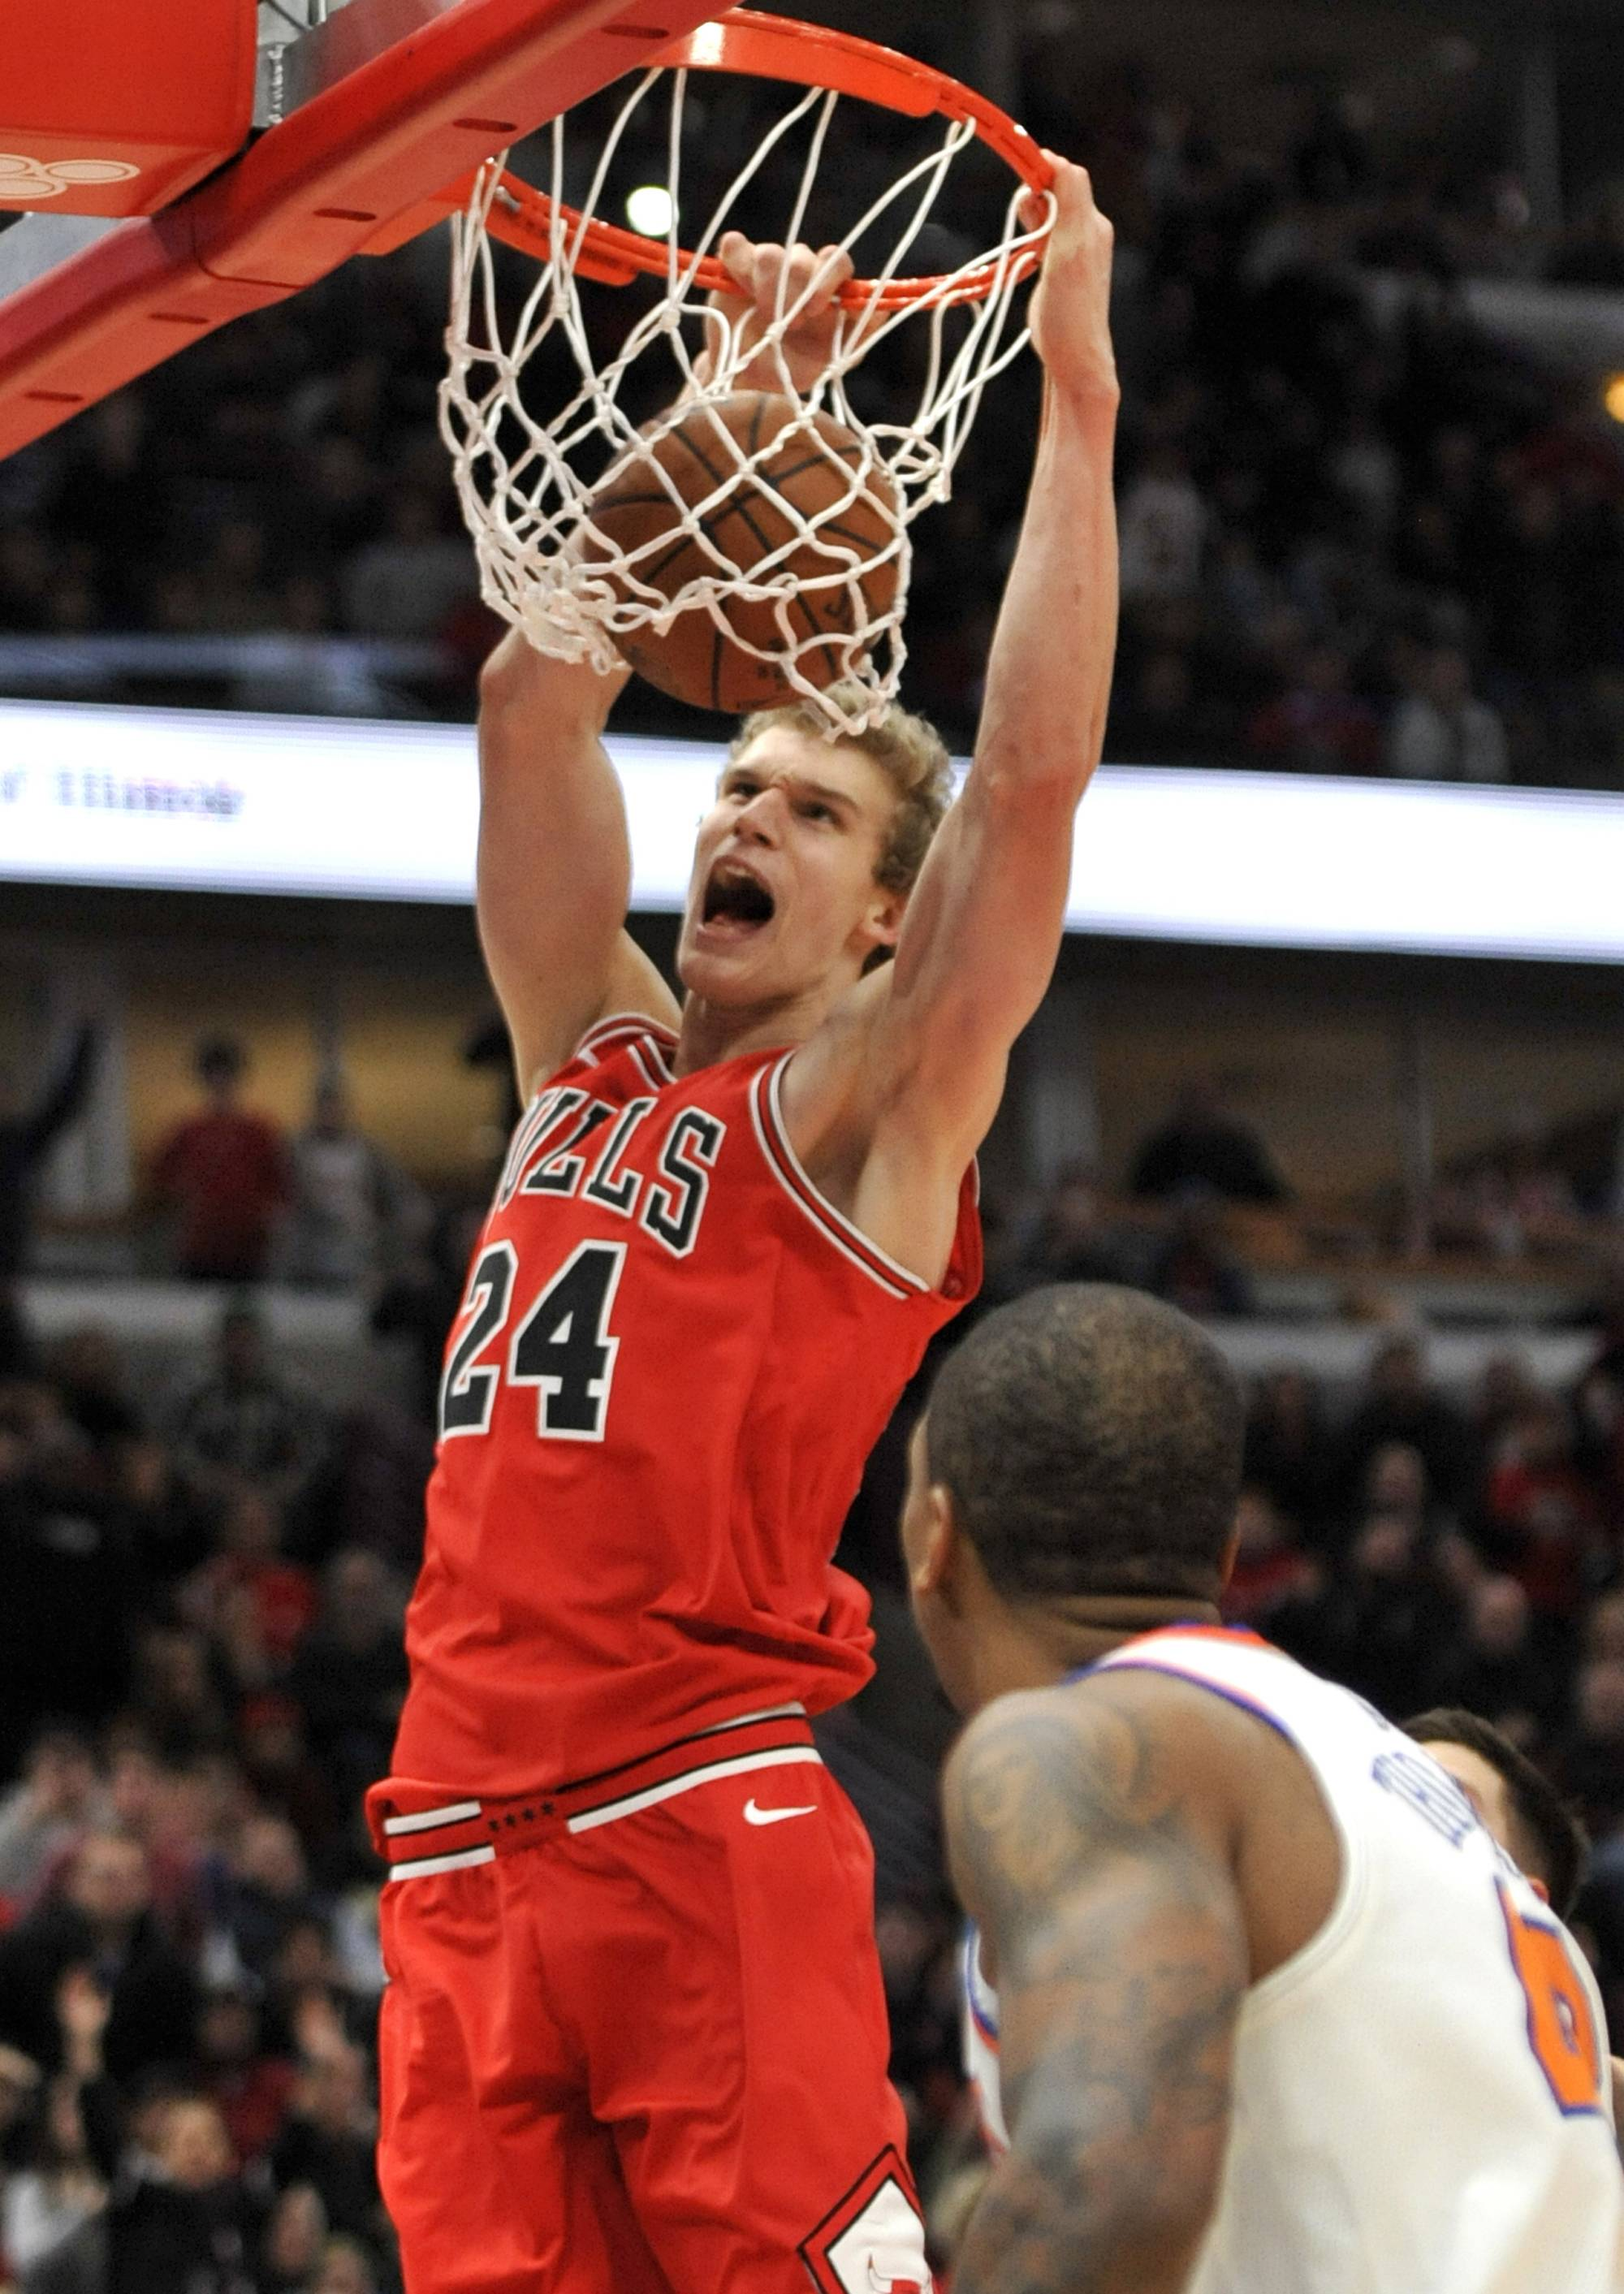 Markkanen gets best of Euro rivals as Chicago Bulls beat Knicks